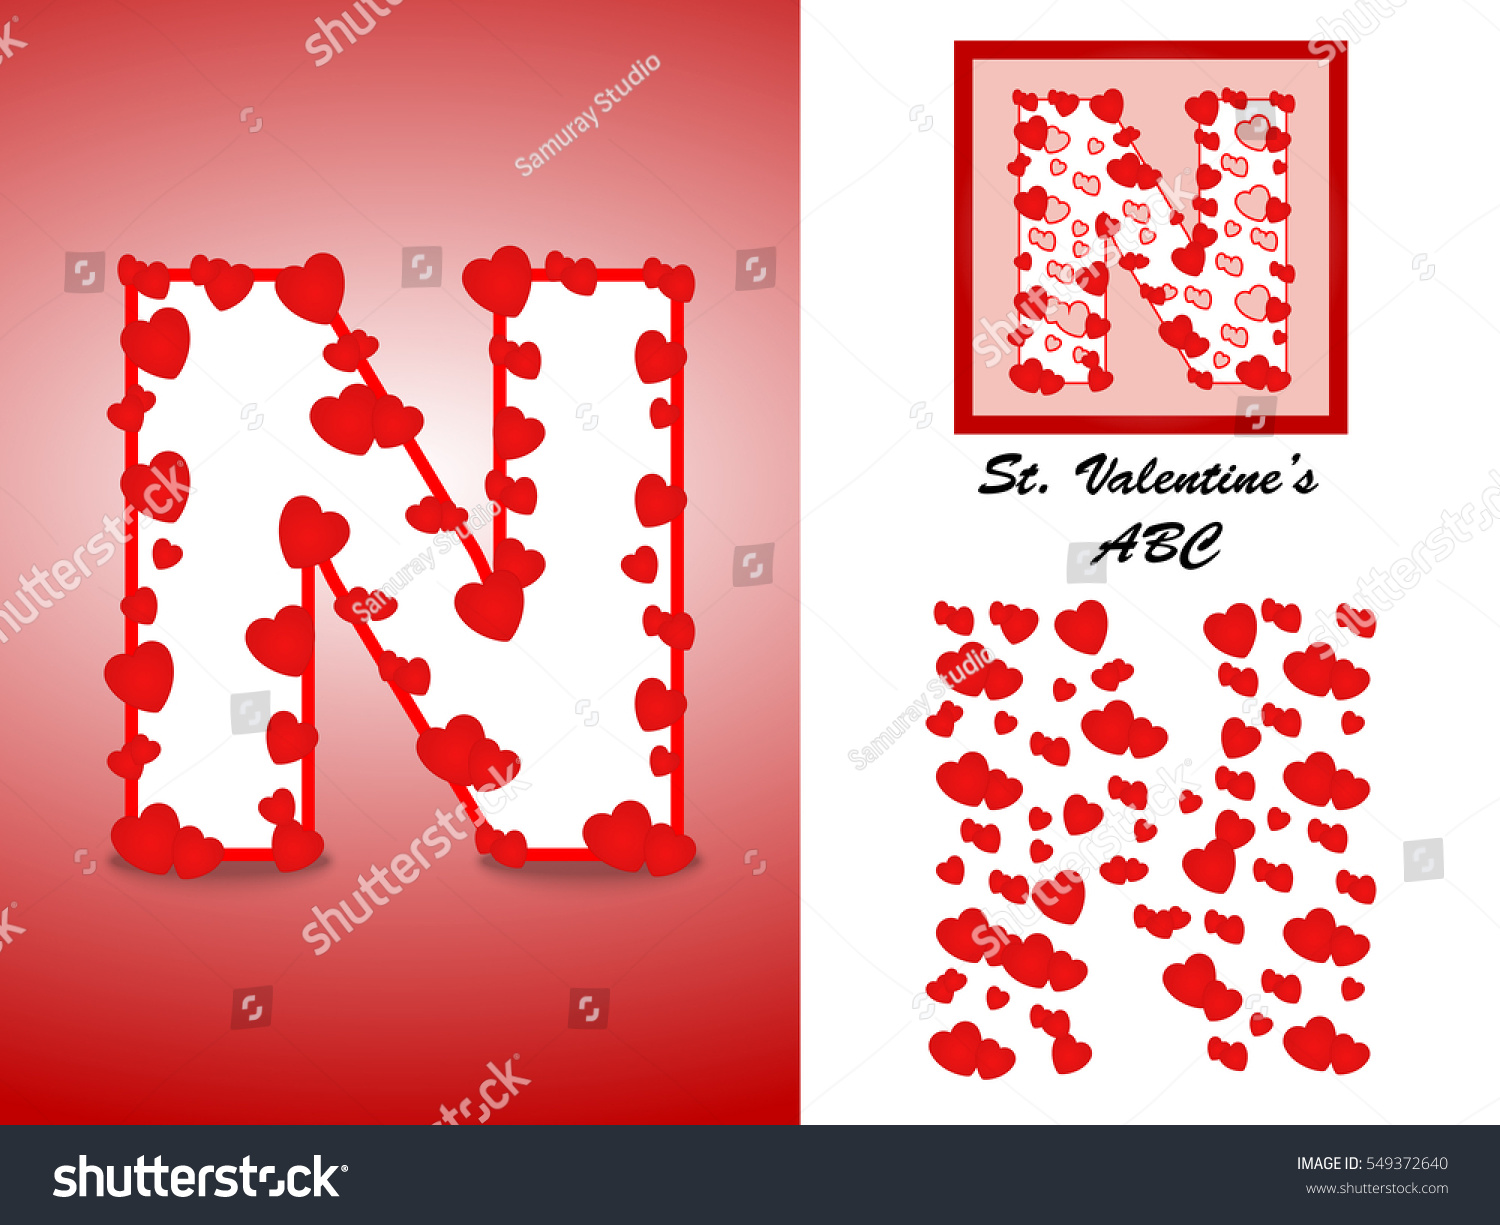 Alphabet Letter N Red Heart Valentine Stock Vector (Royalty Free ...